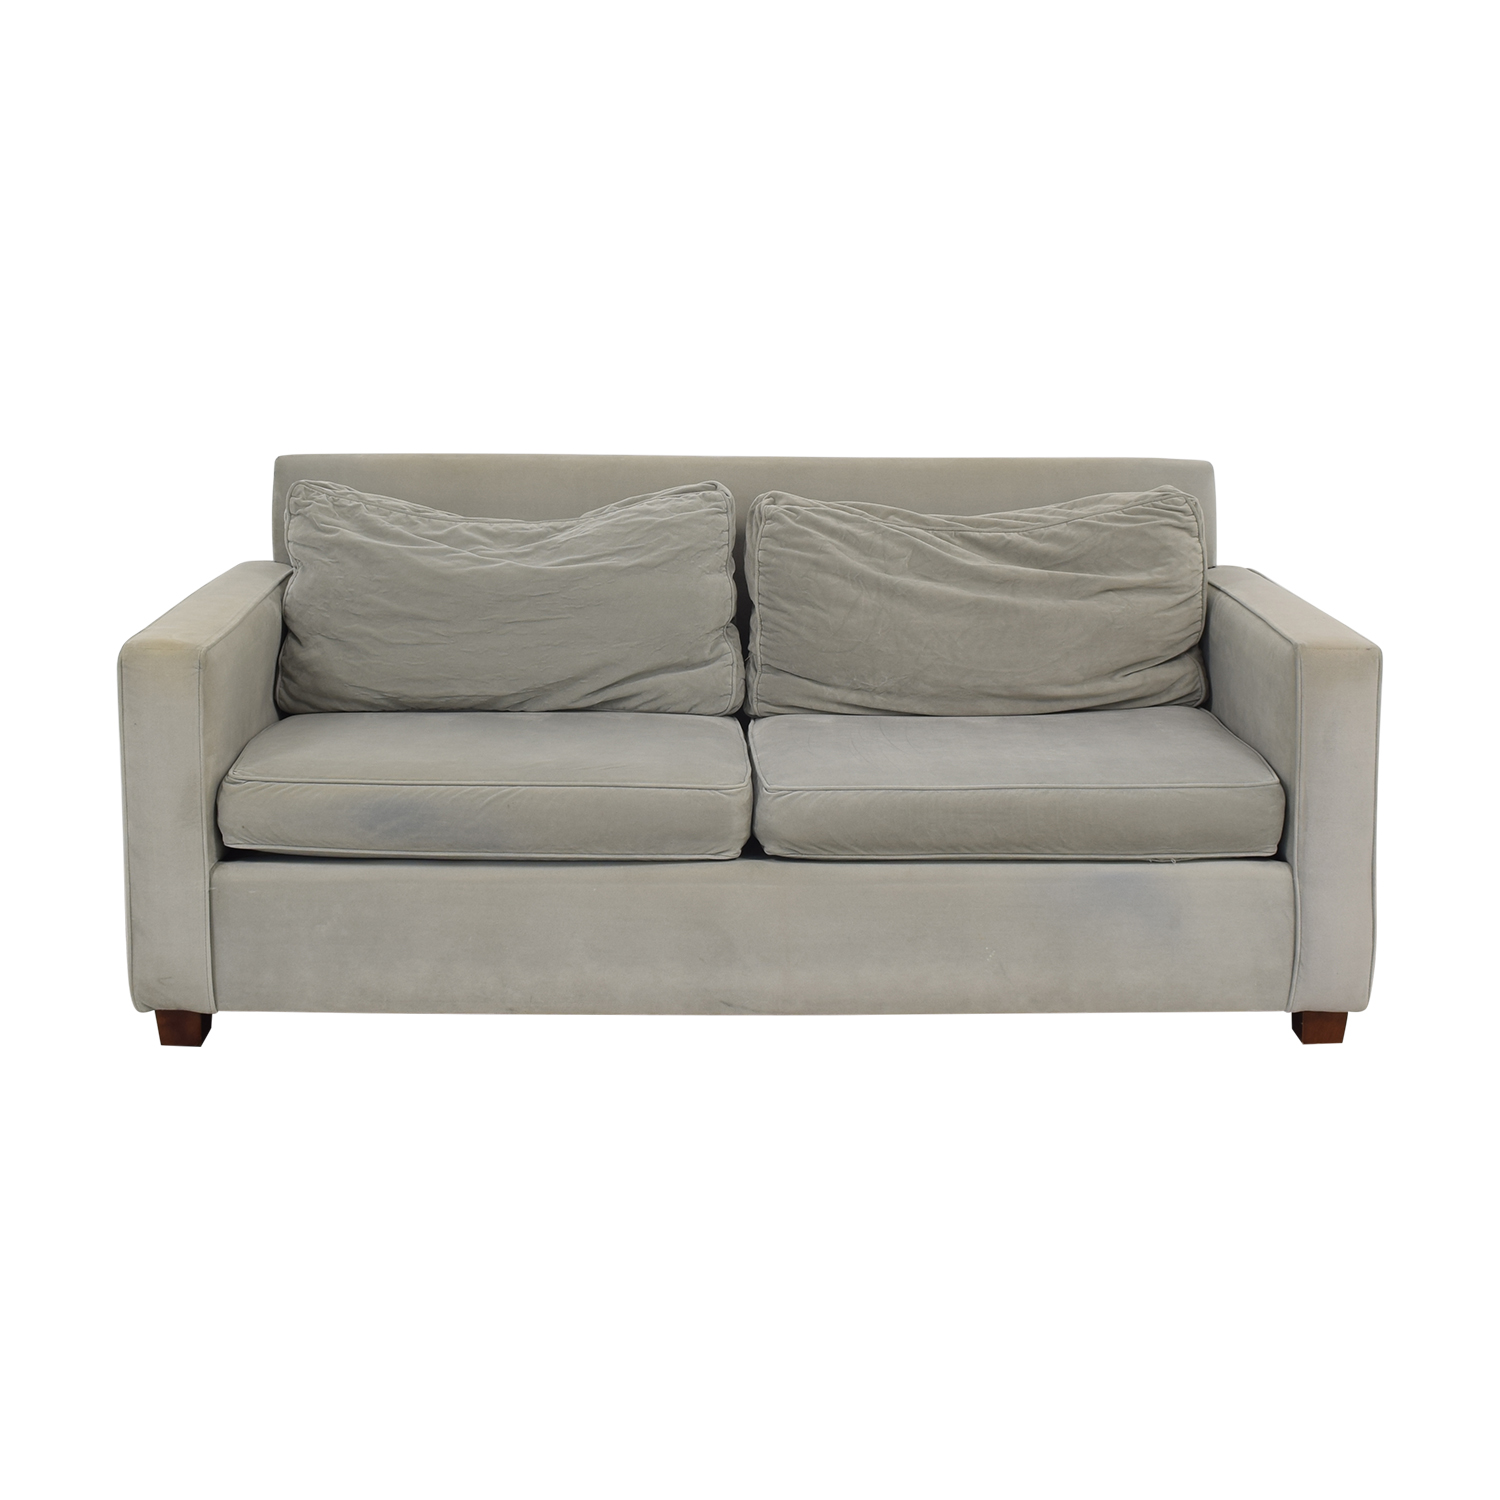 West Elm West Elm Henry Sofa second hand